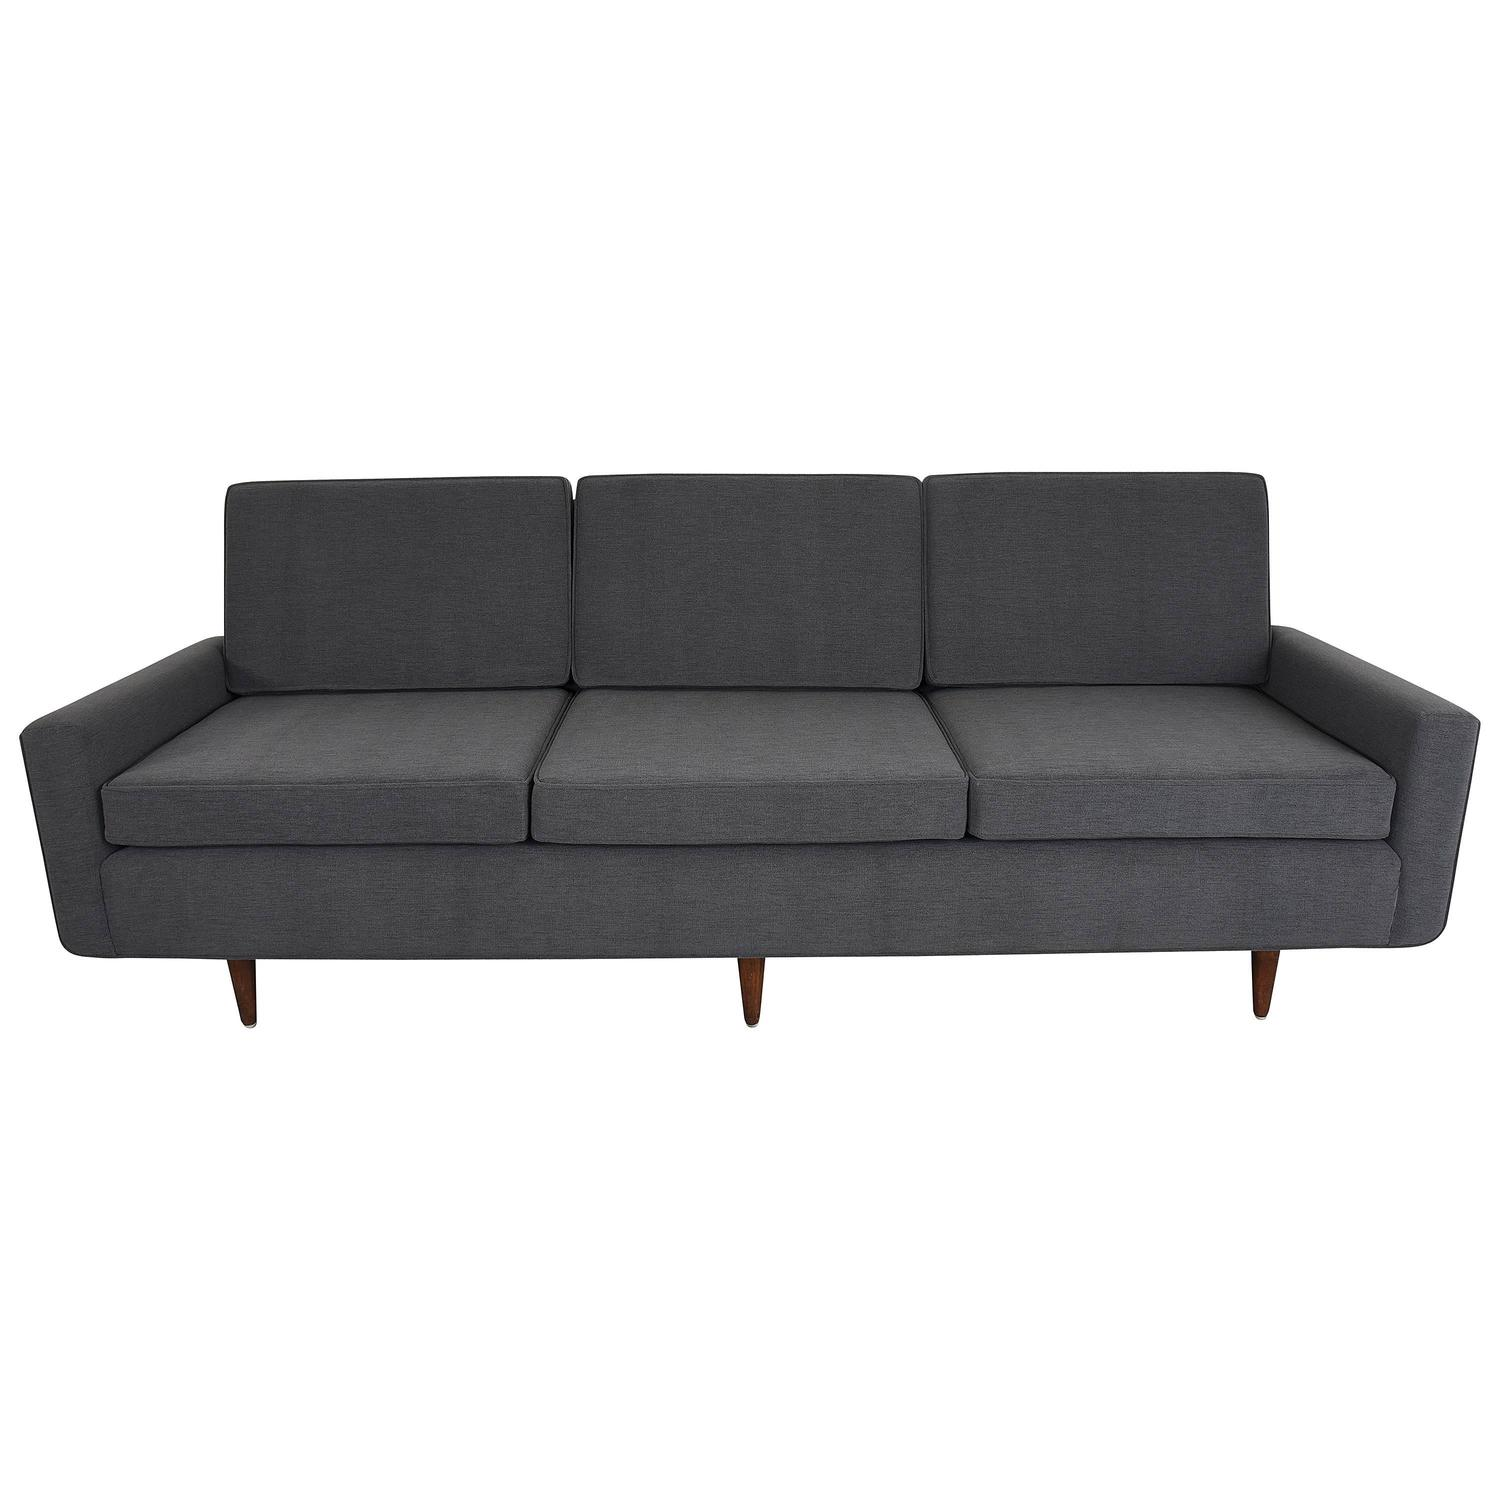 Florence Knoll Sofa Three Seat Sofa Model 26 Pair Available For Sale At 1stdibs